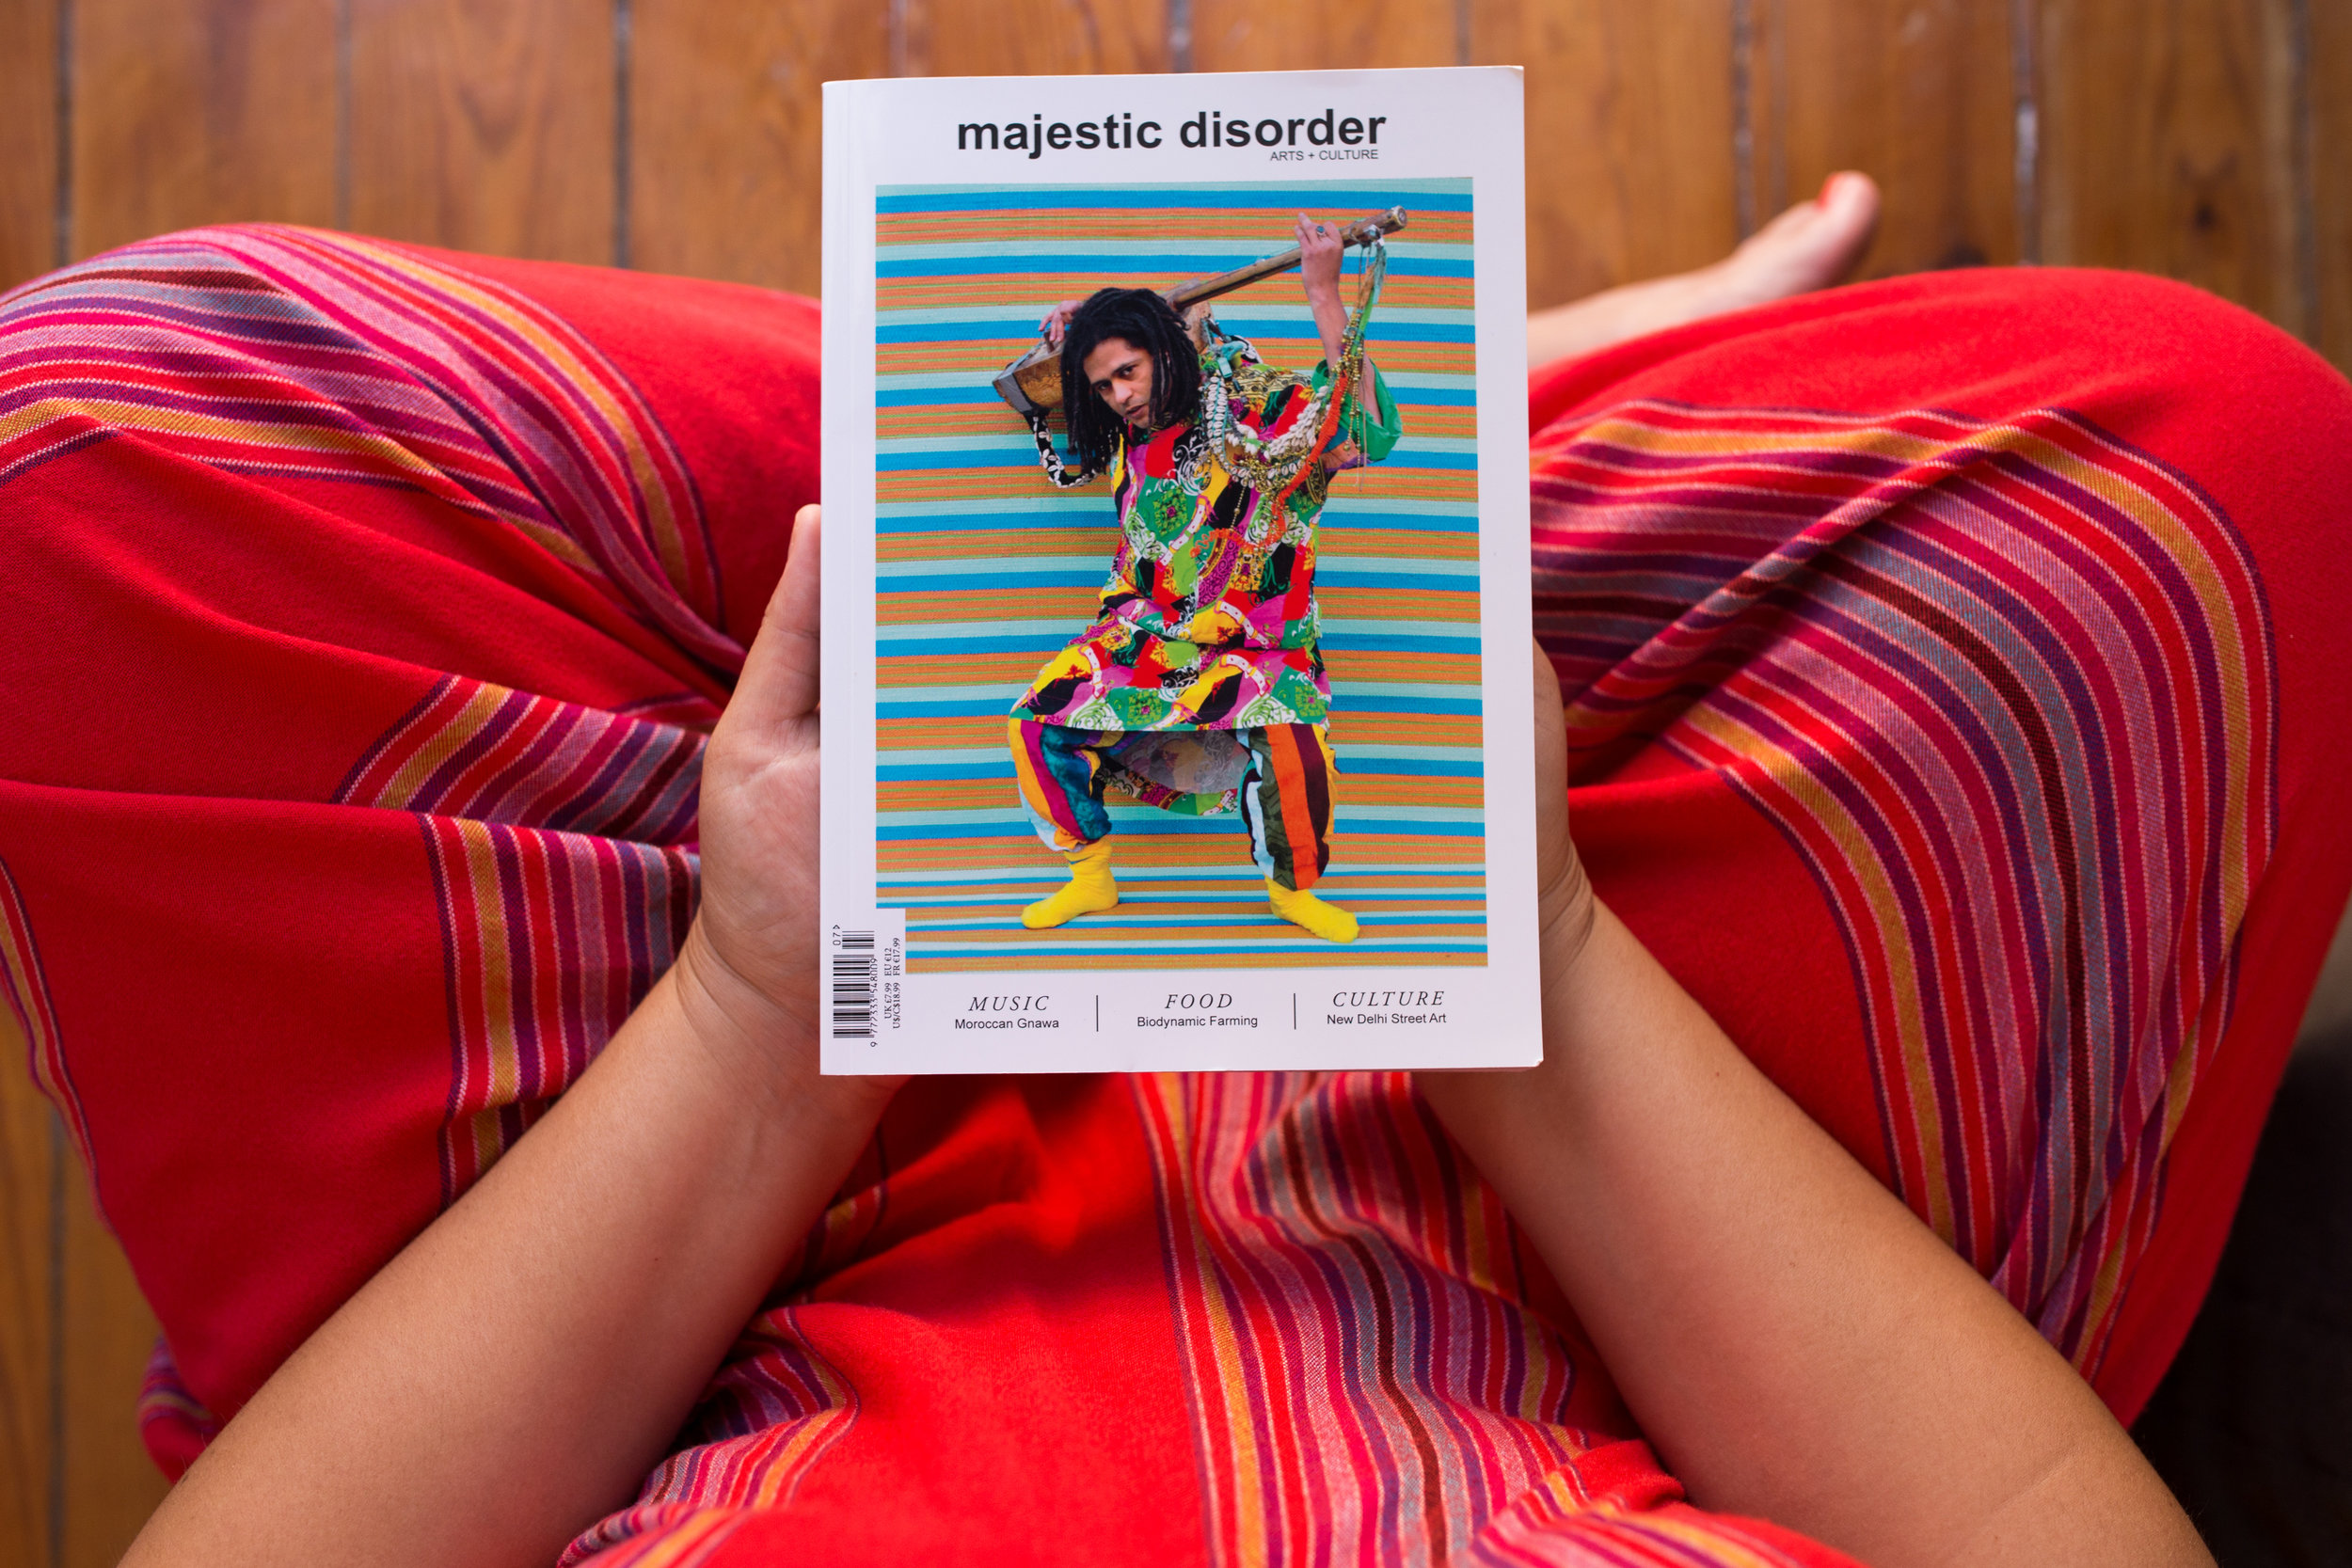 Issue 7 of Majestic Disorder